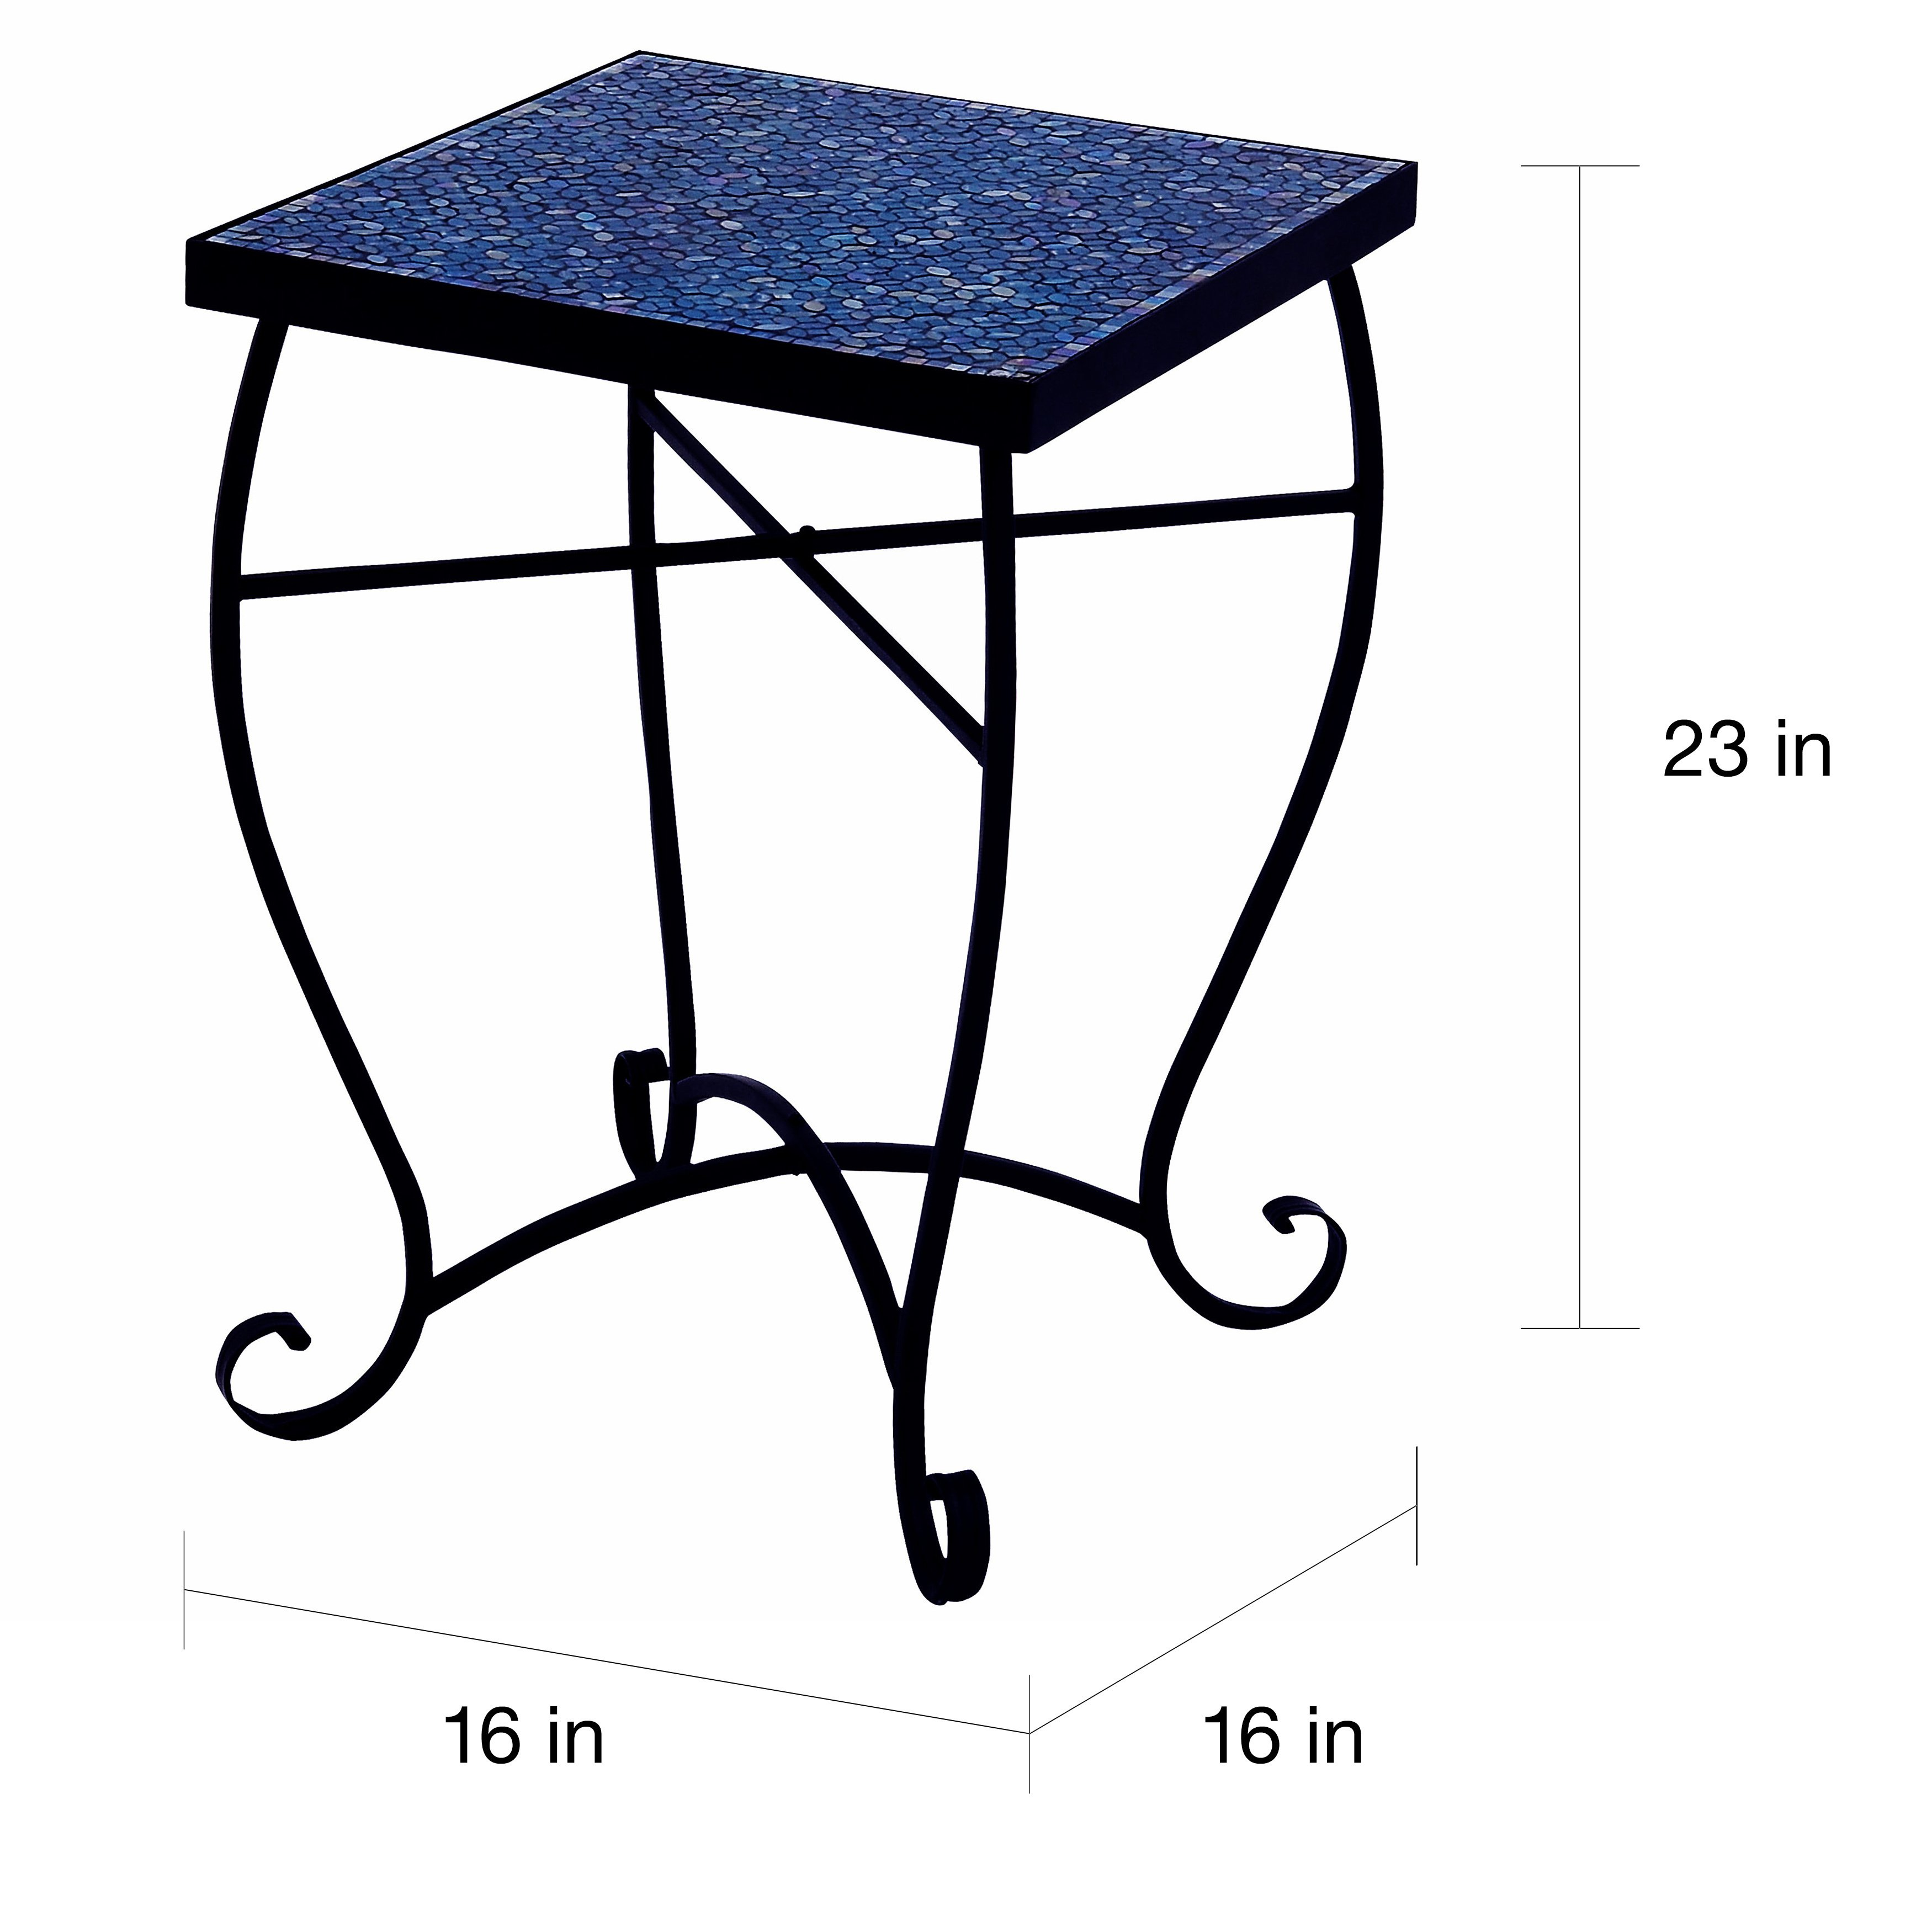 moroccan mosaic blue square side accent table free shipping today buffet server wrought iron brass with glass top silver tray small marble coffee casual dining sets chrome